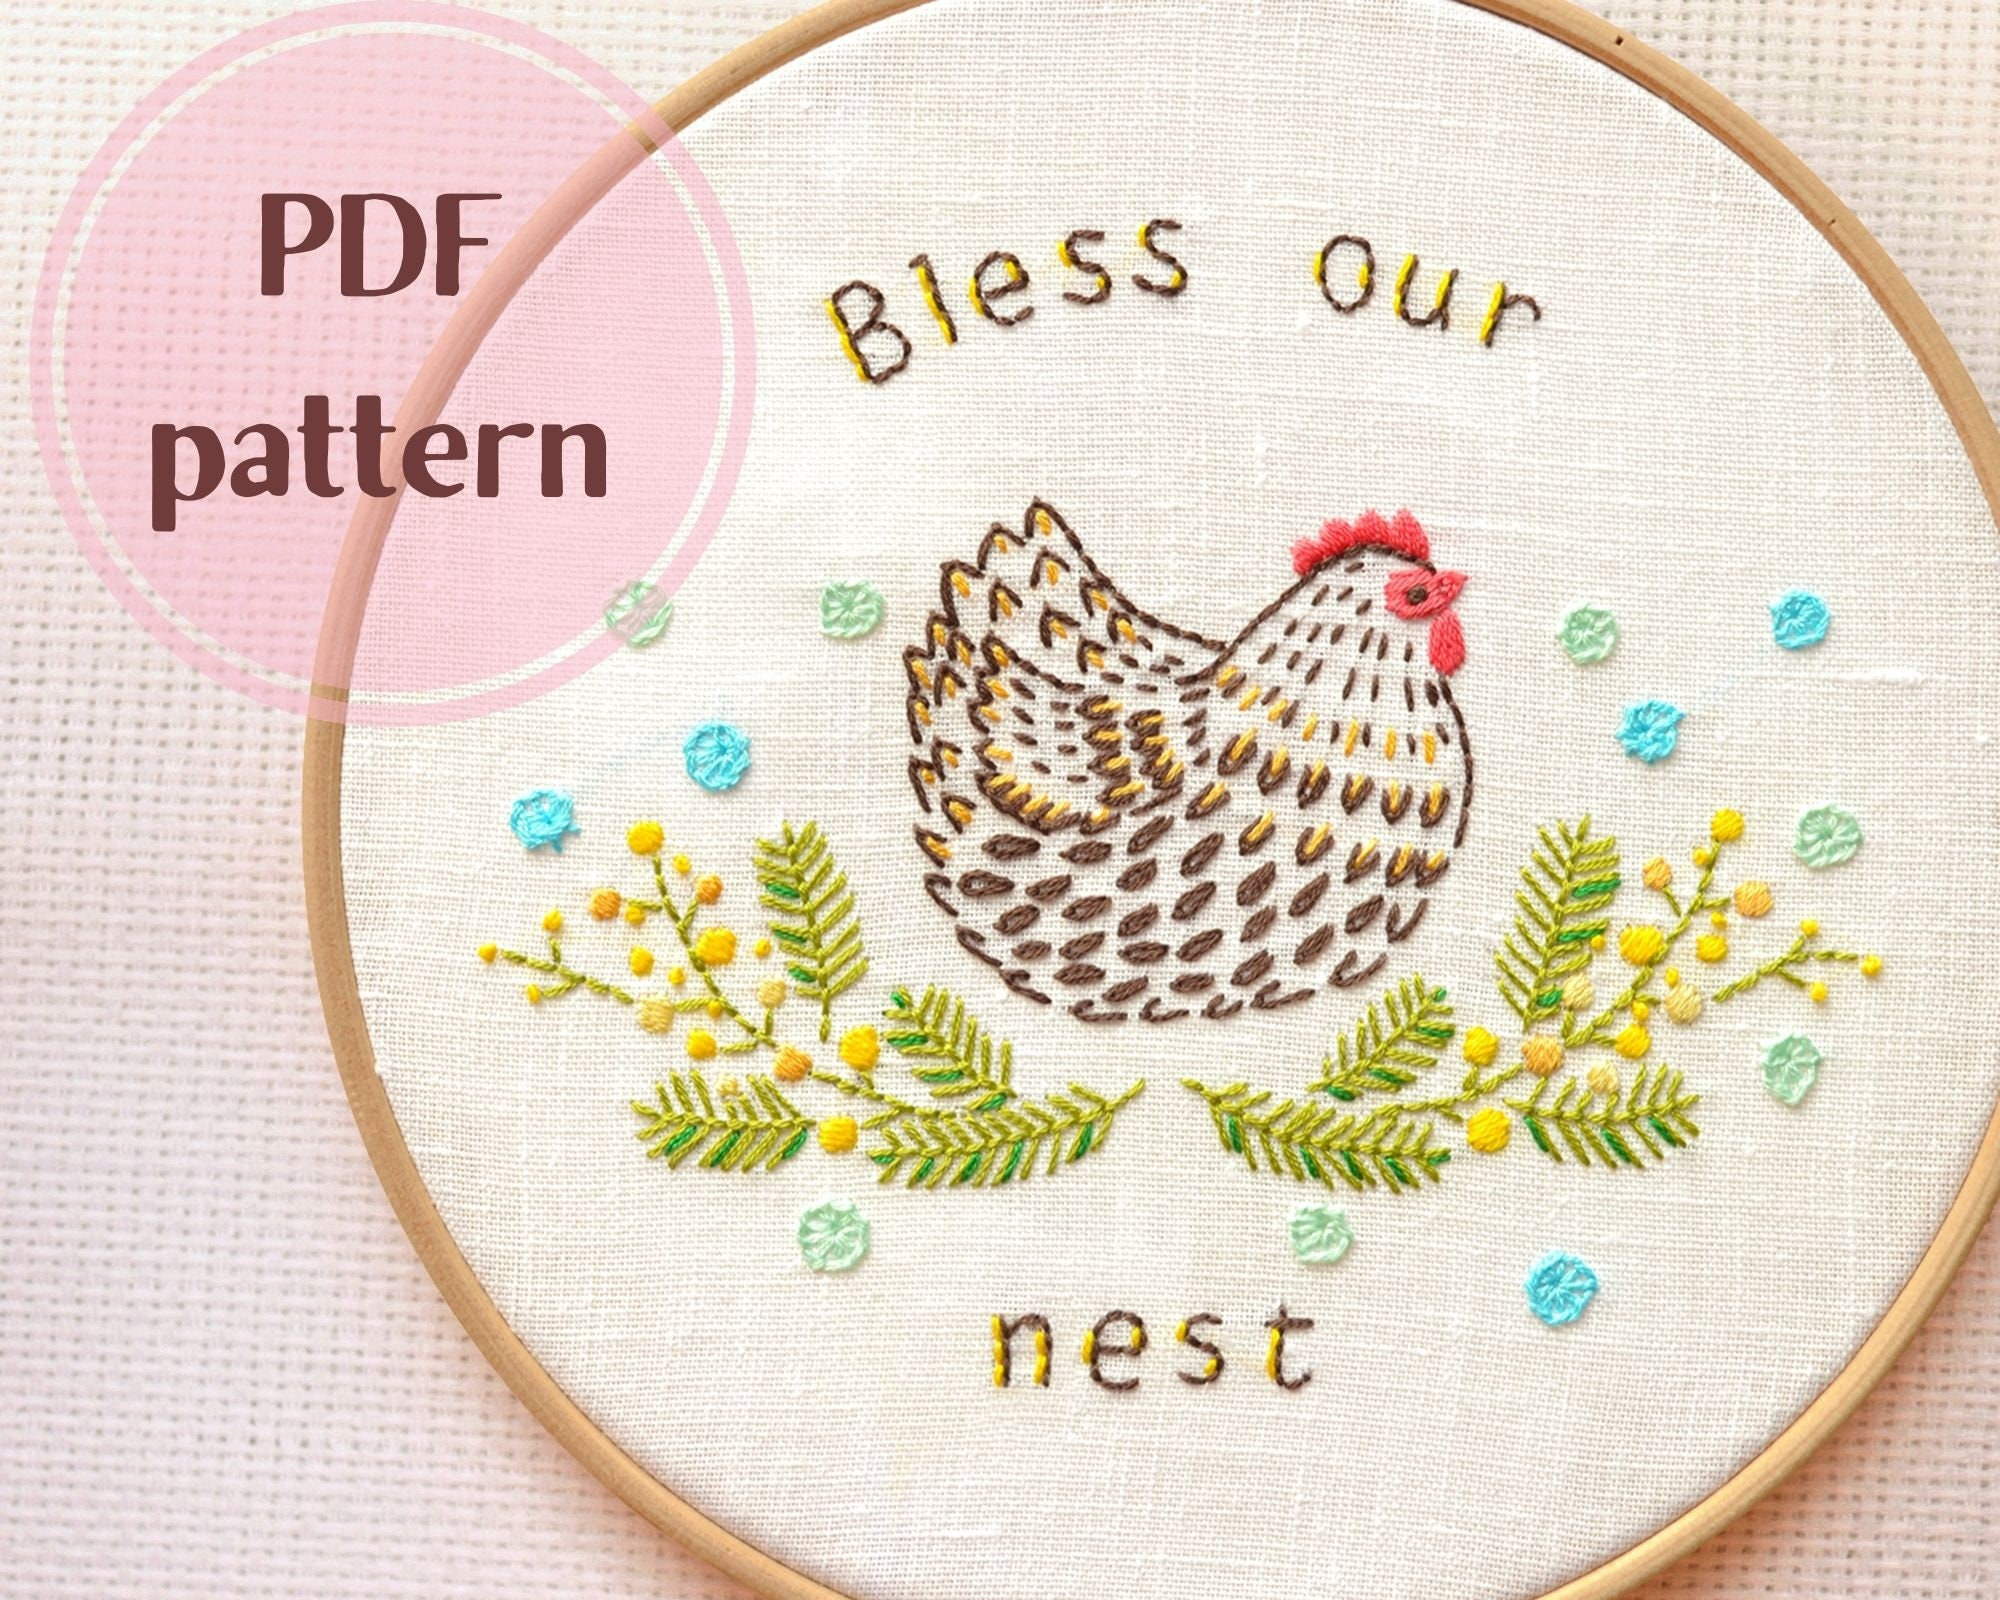 Easter Hand embroidery patterns • PDF • Spring embroidery design •  Embroidery Chicken • Bless our nest • Family simbol • NaiveNeedle